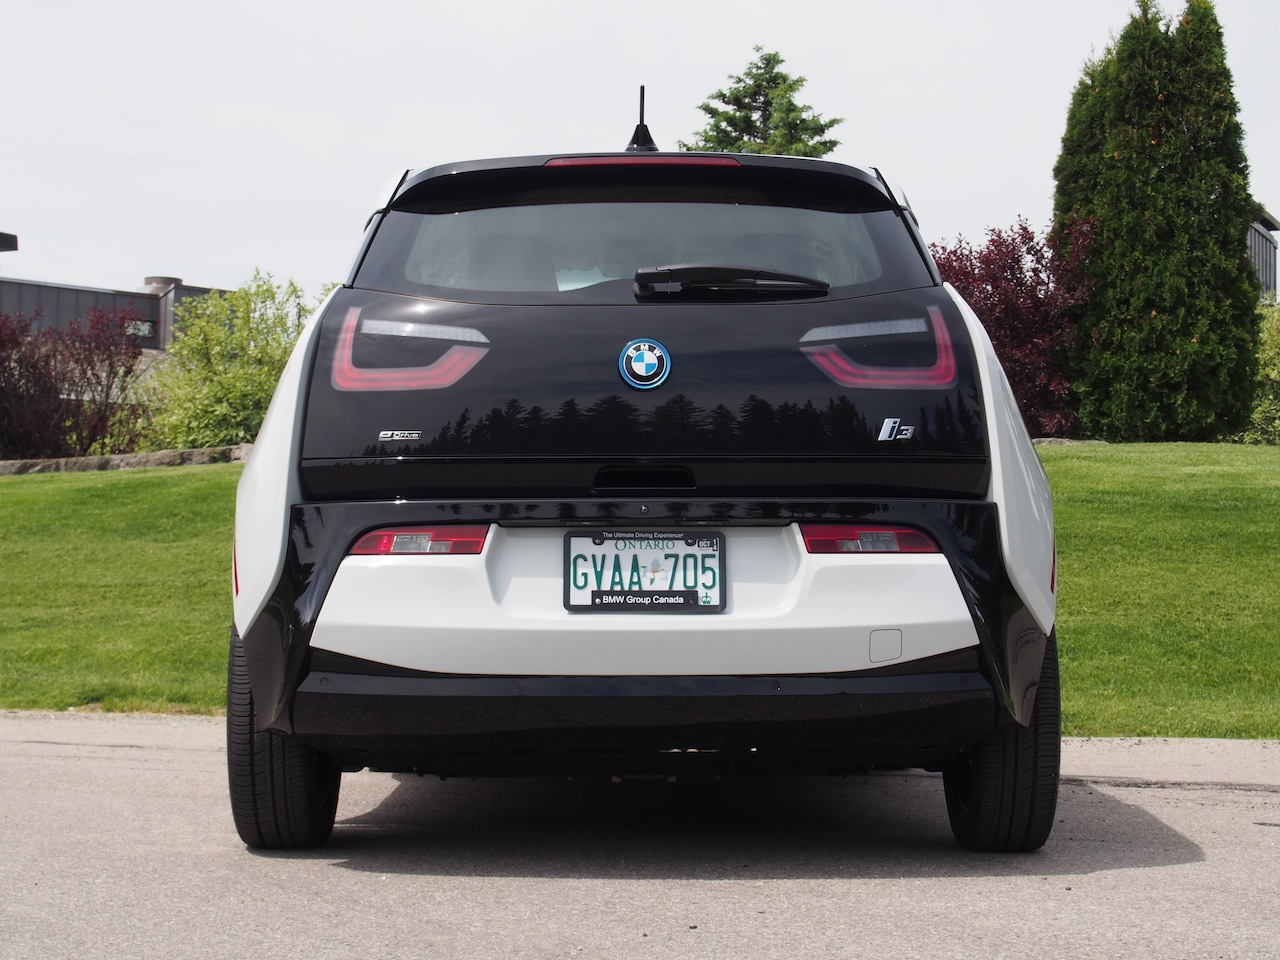 2014 bmw i3 first drive cars photos test drives and reviews canadian auto review. Black Bedroom Furniture Sets. Home Design Ideas